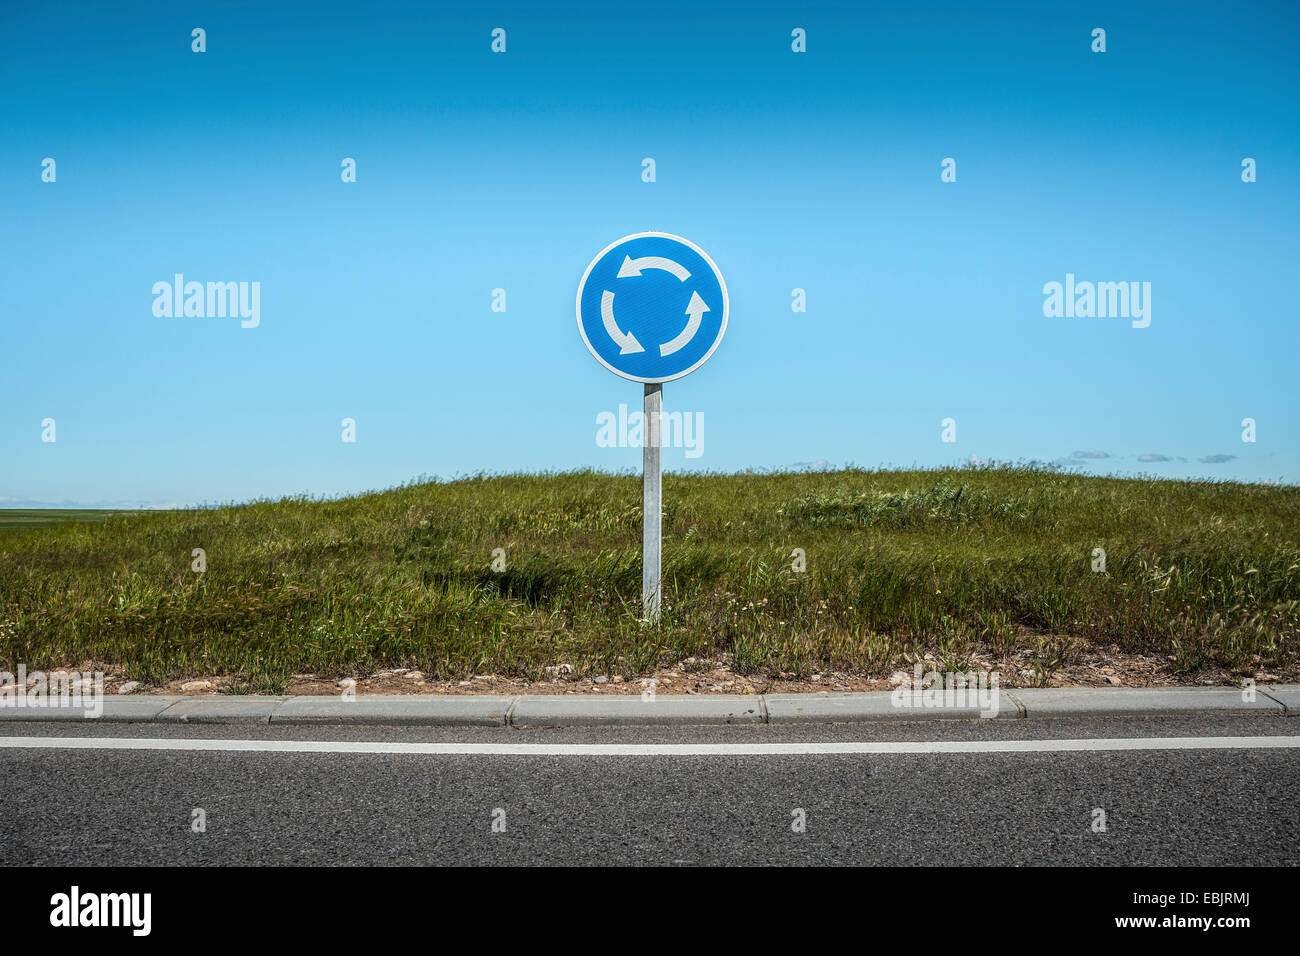 Roundabout sign by edge of road - Stock Image